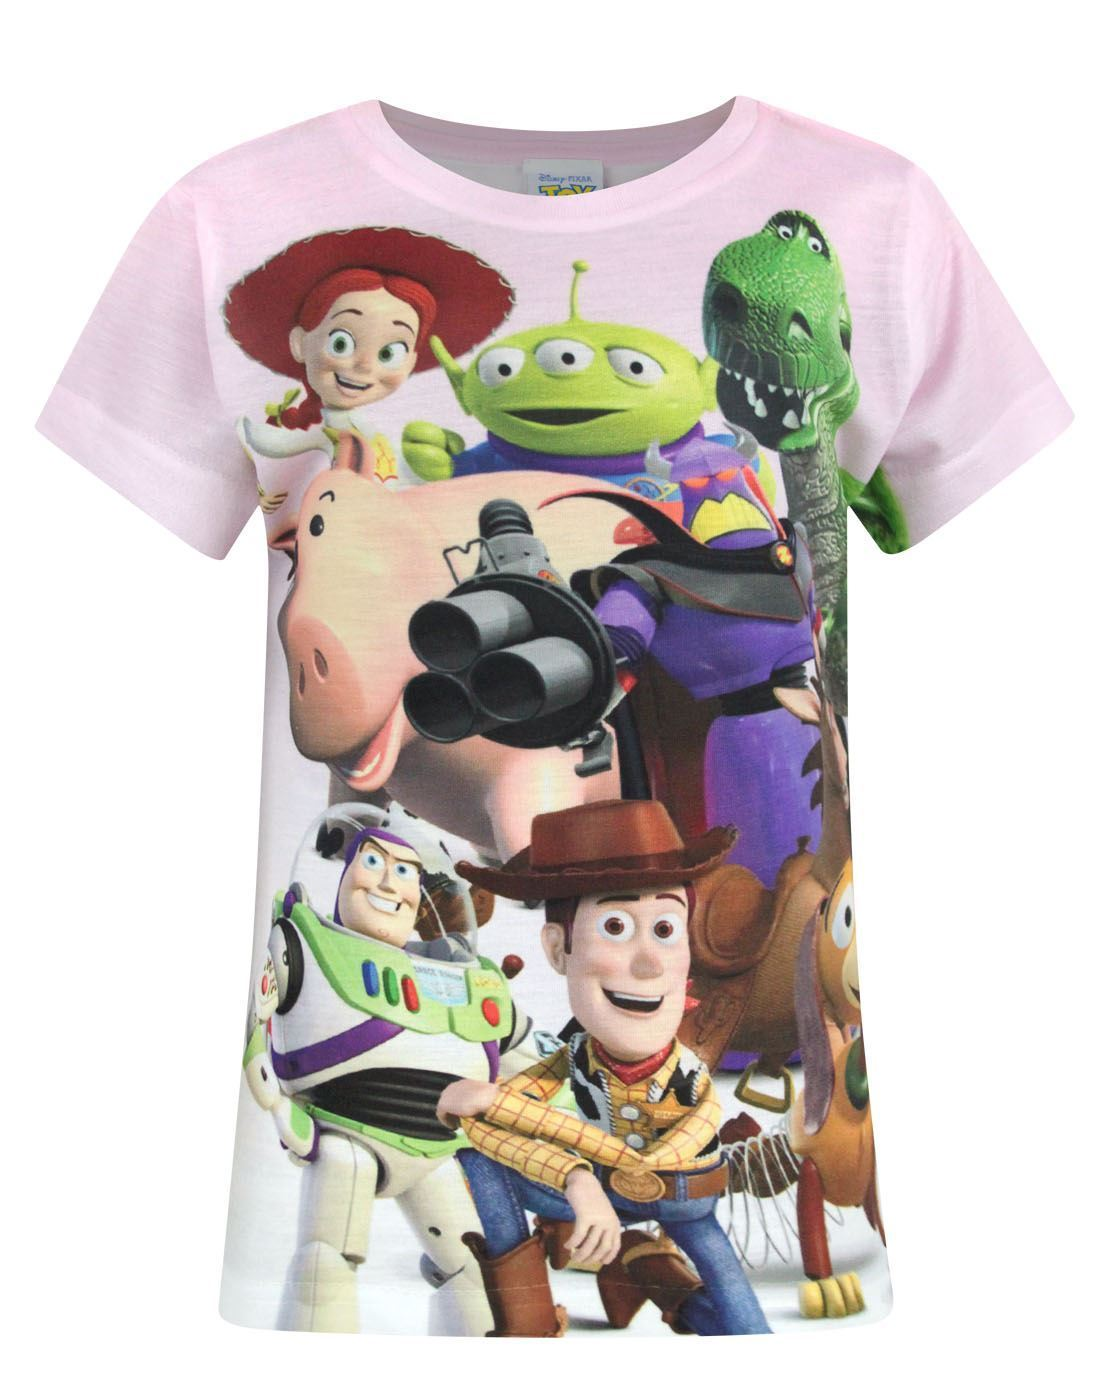 Toy Story Play Sublimation Girl's T-Shirt